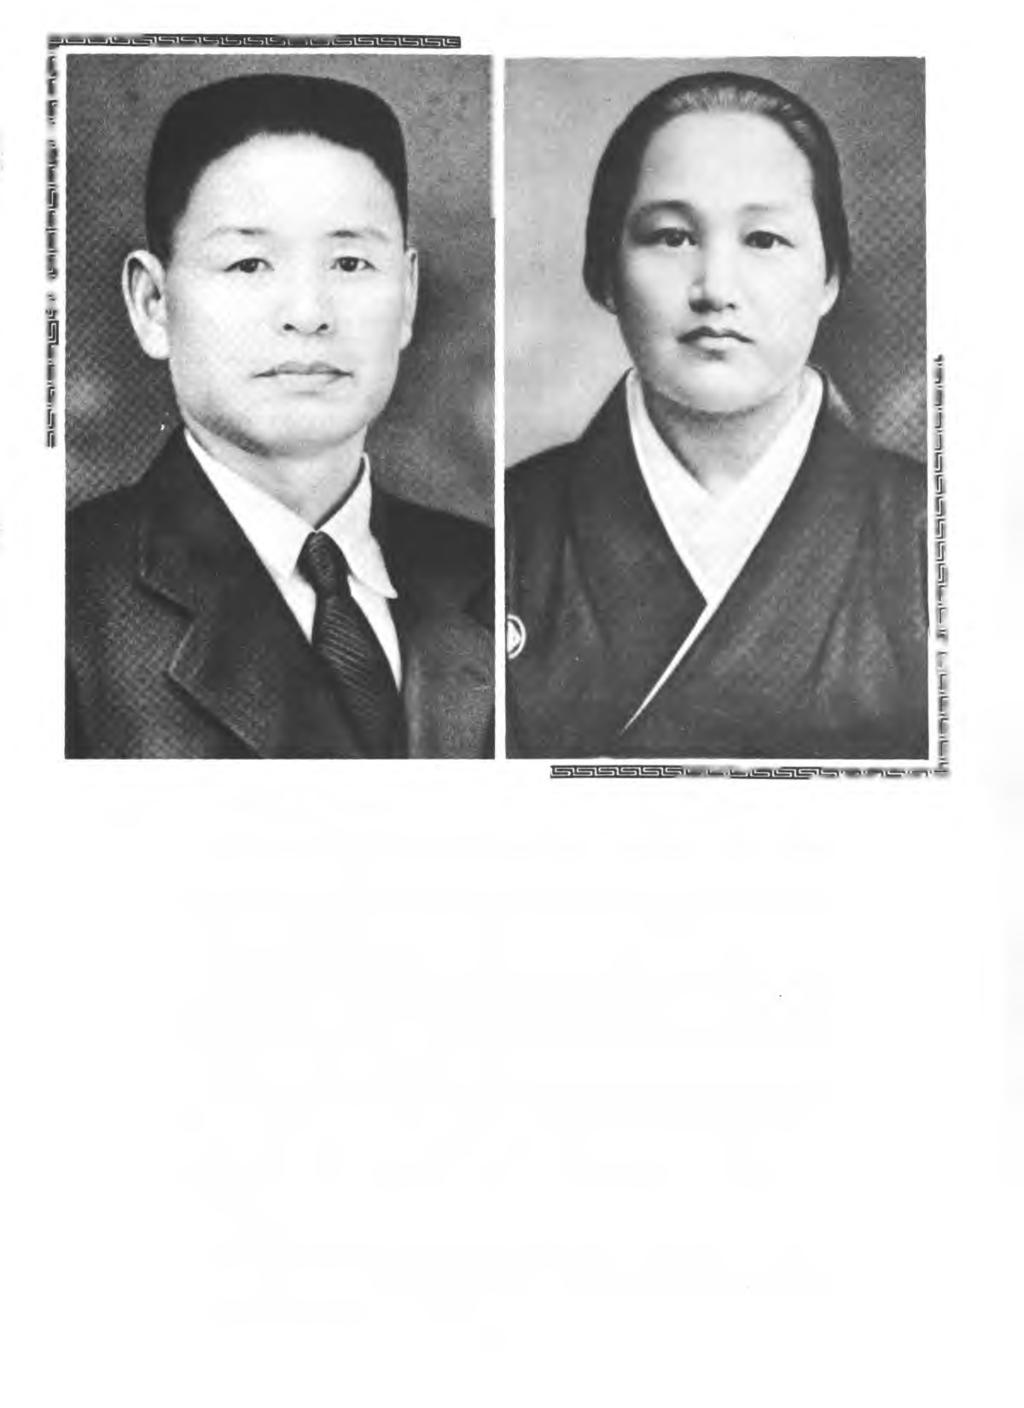 IWAKICHI YAMADA Deceased TOKI YAMADA Deceased The late Iwakichi Yamada -- plantation worker, farmer, ranch hand, hunter -- was the founder, owner and first president of I. Yamada Furniture Store Ltd.